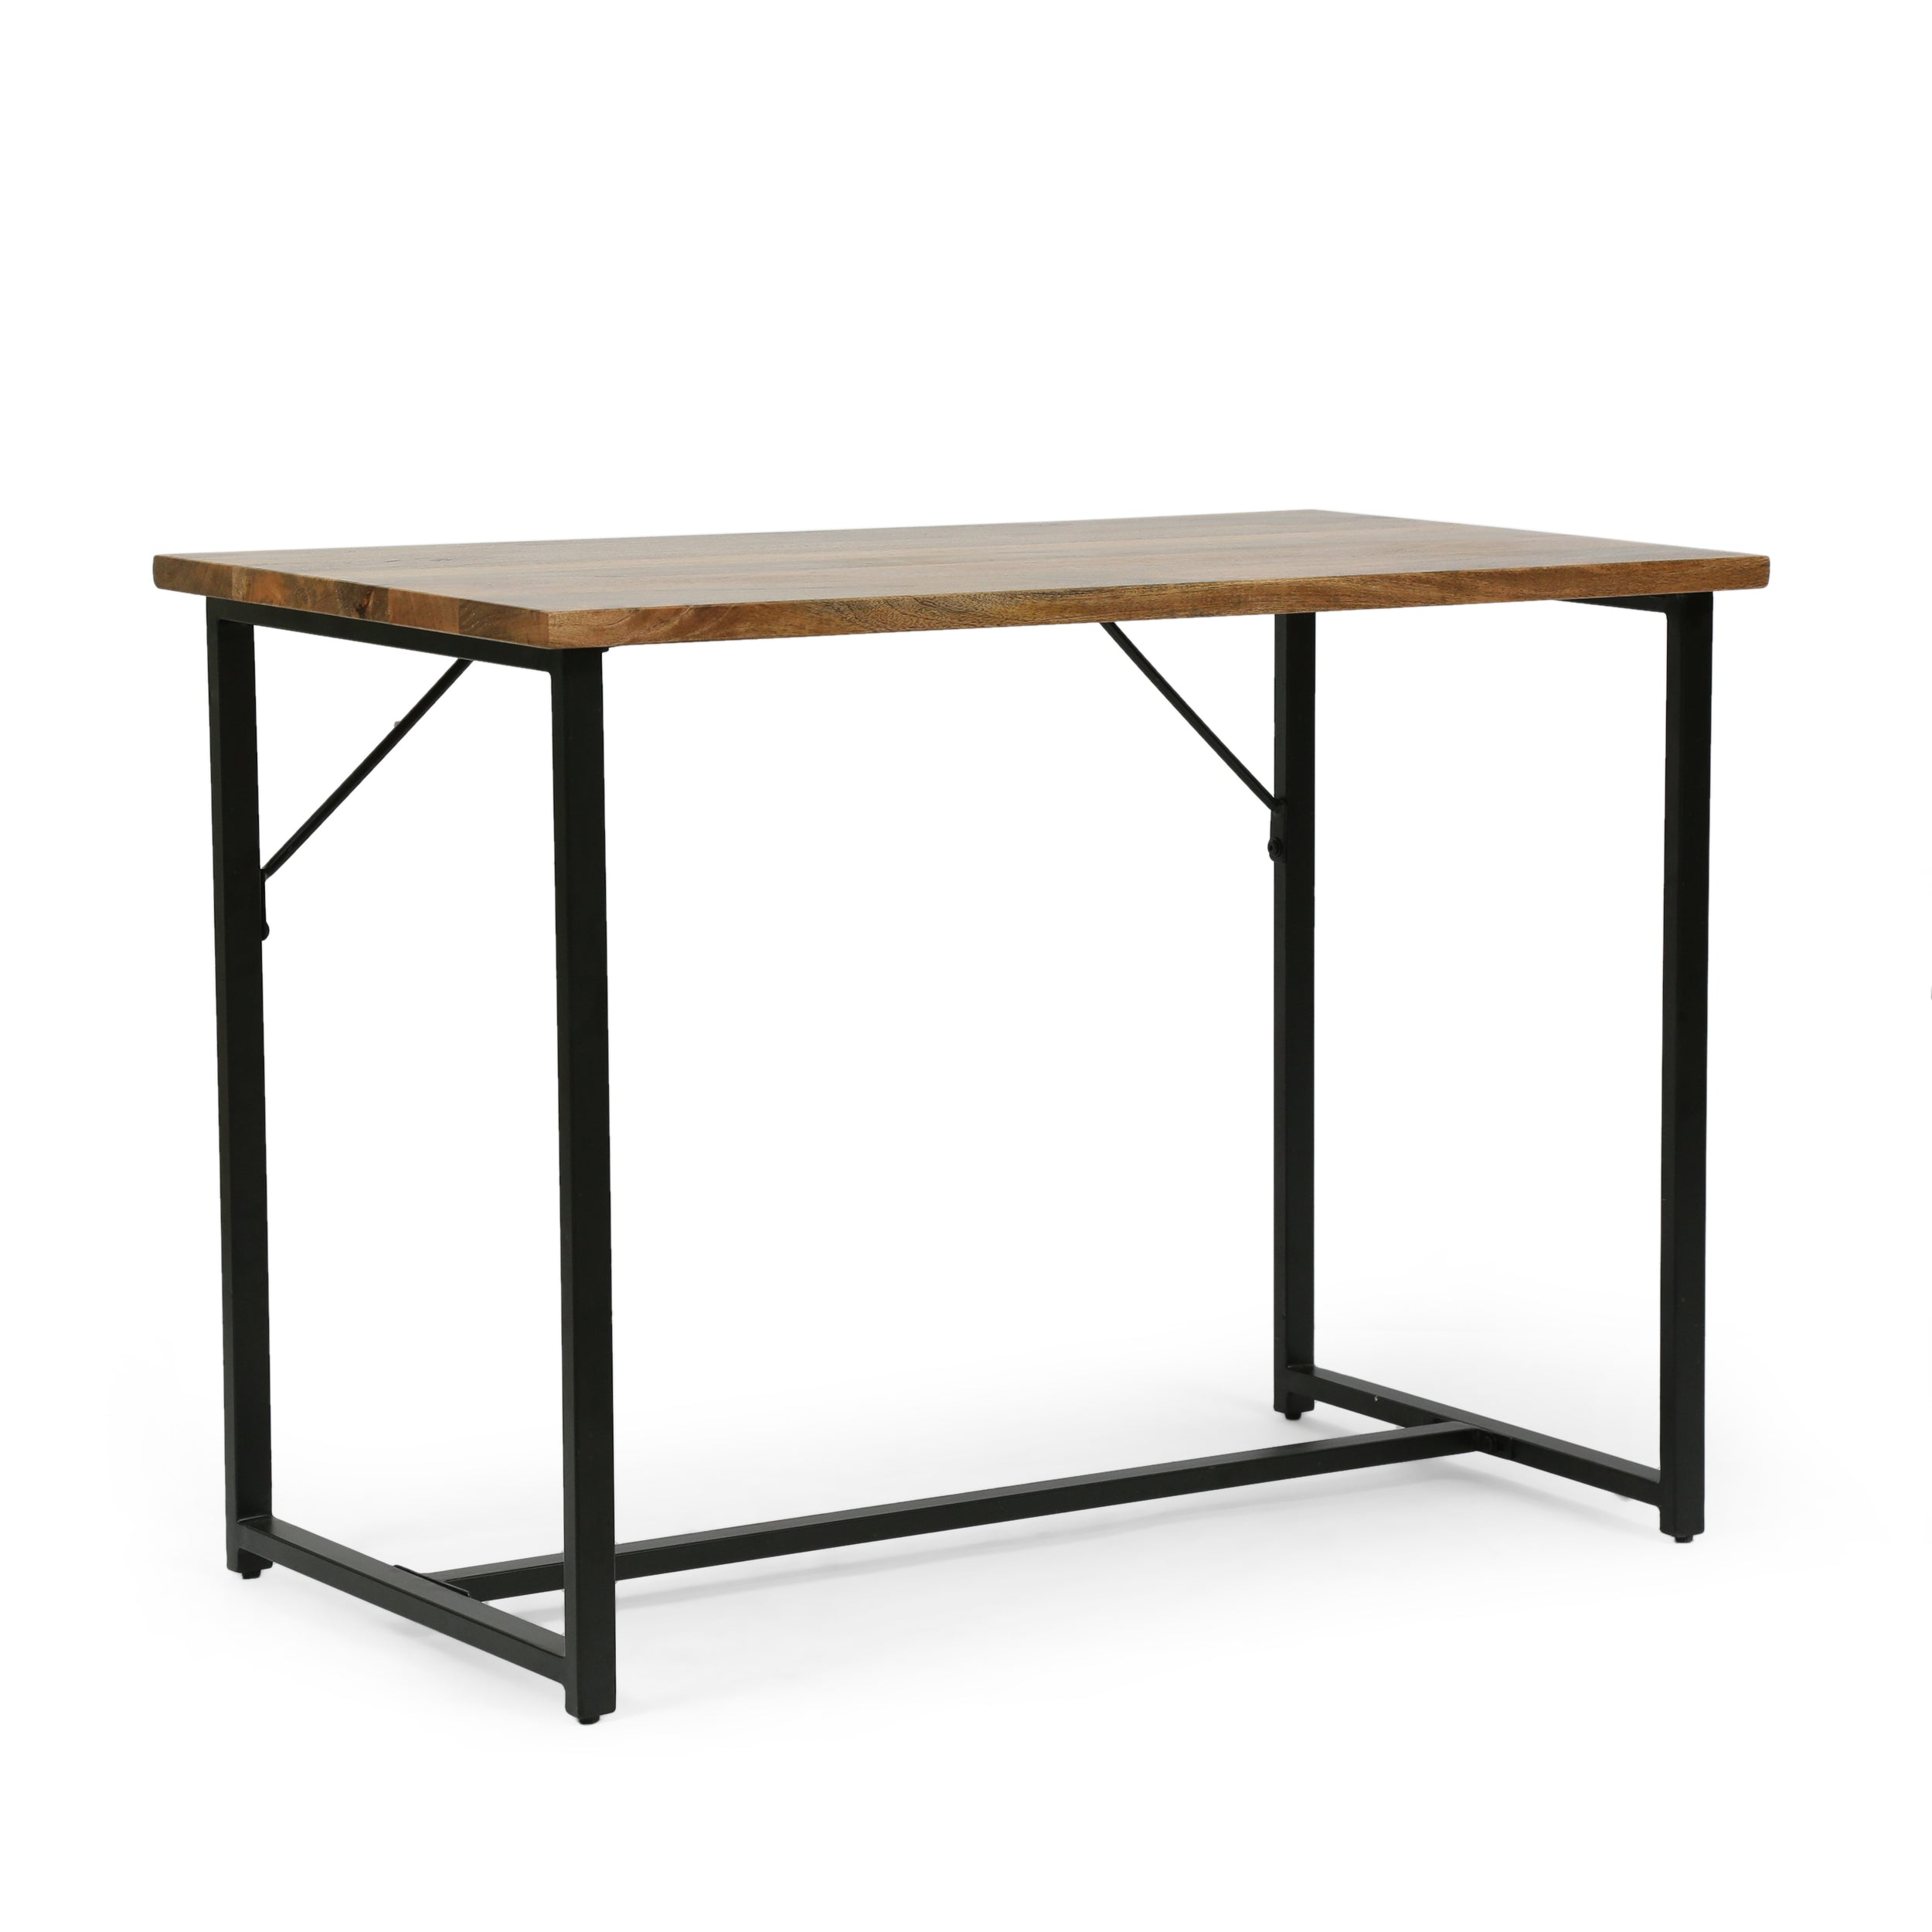 Addyston Modern Industrial Handcrafted Mango Wood Desk Honey Brown and Black